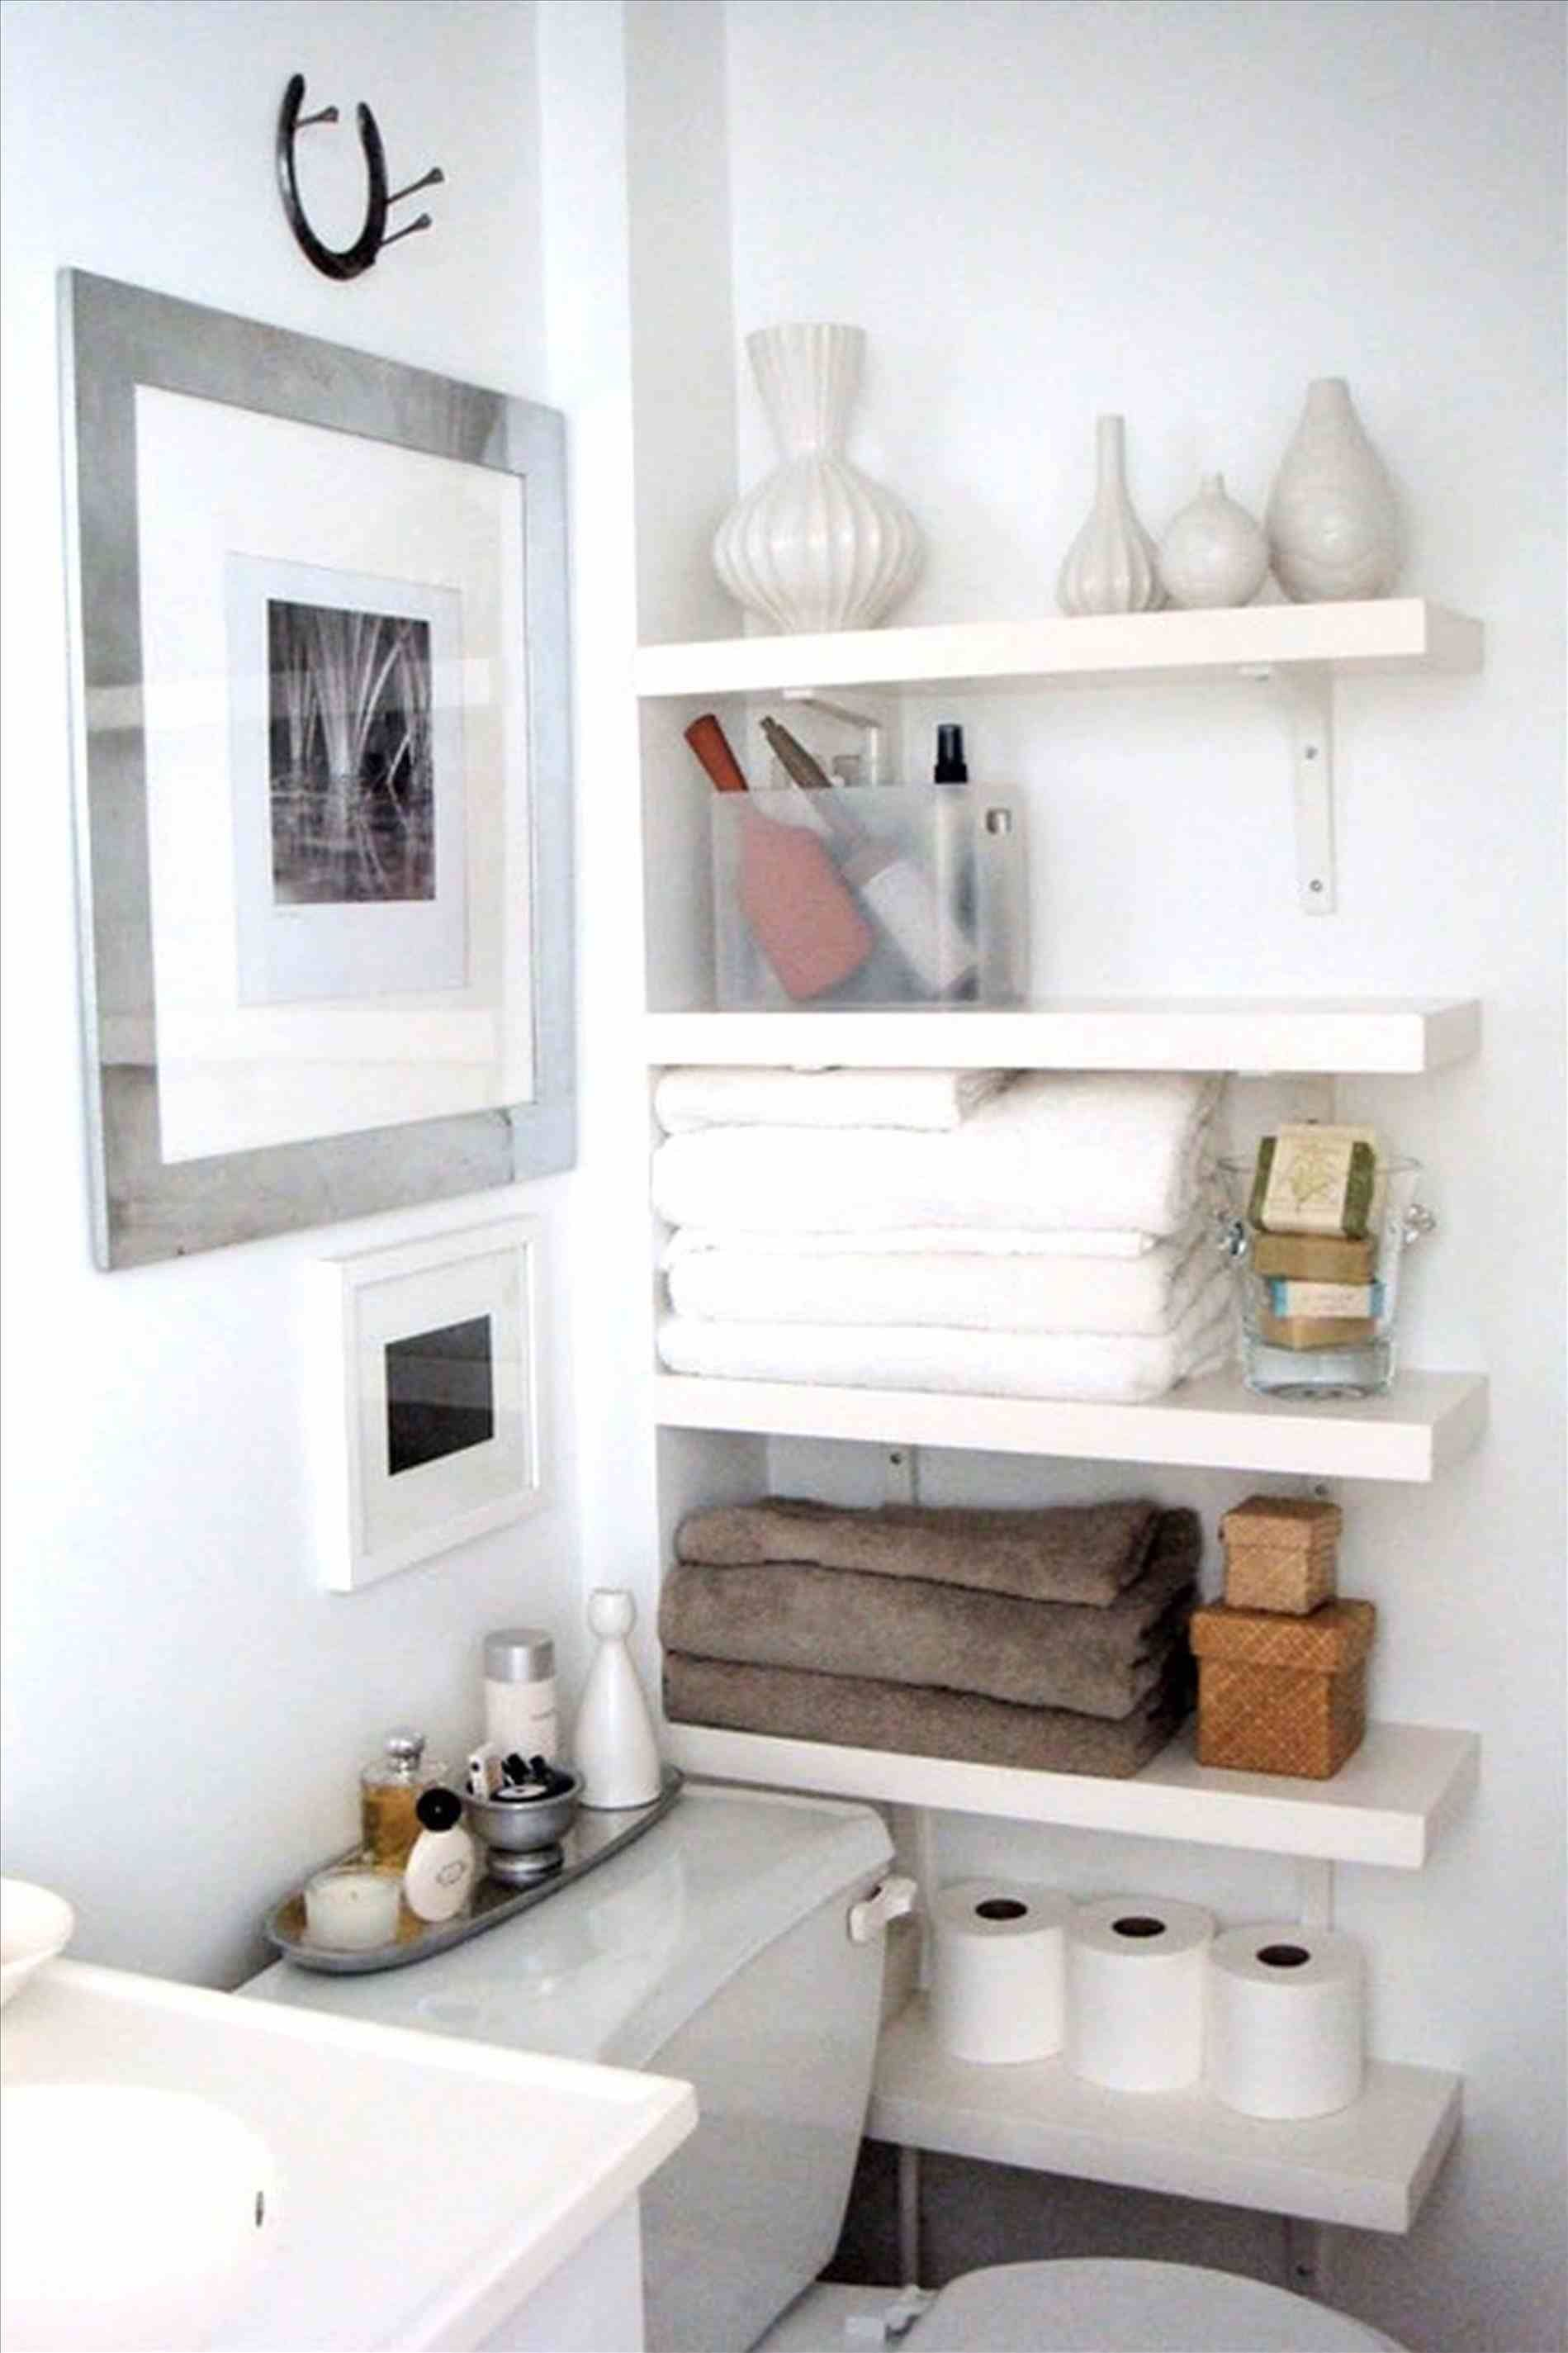 New Post kids bathroom storage ideas visit Bobayule Trending Decors ...